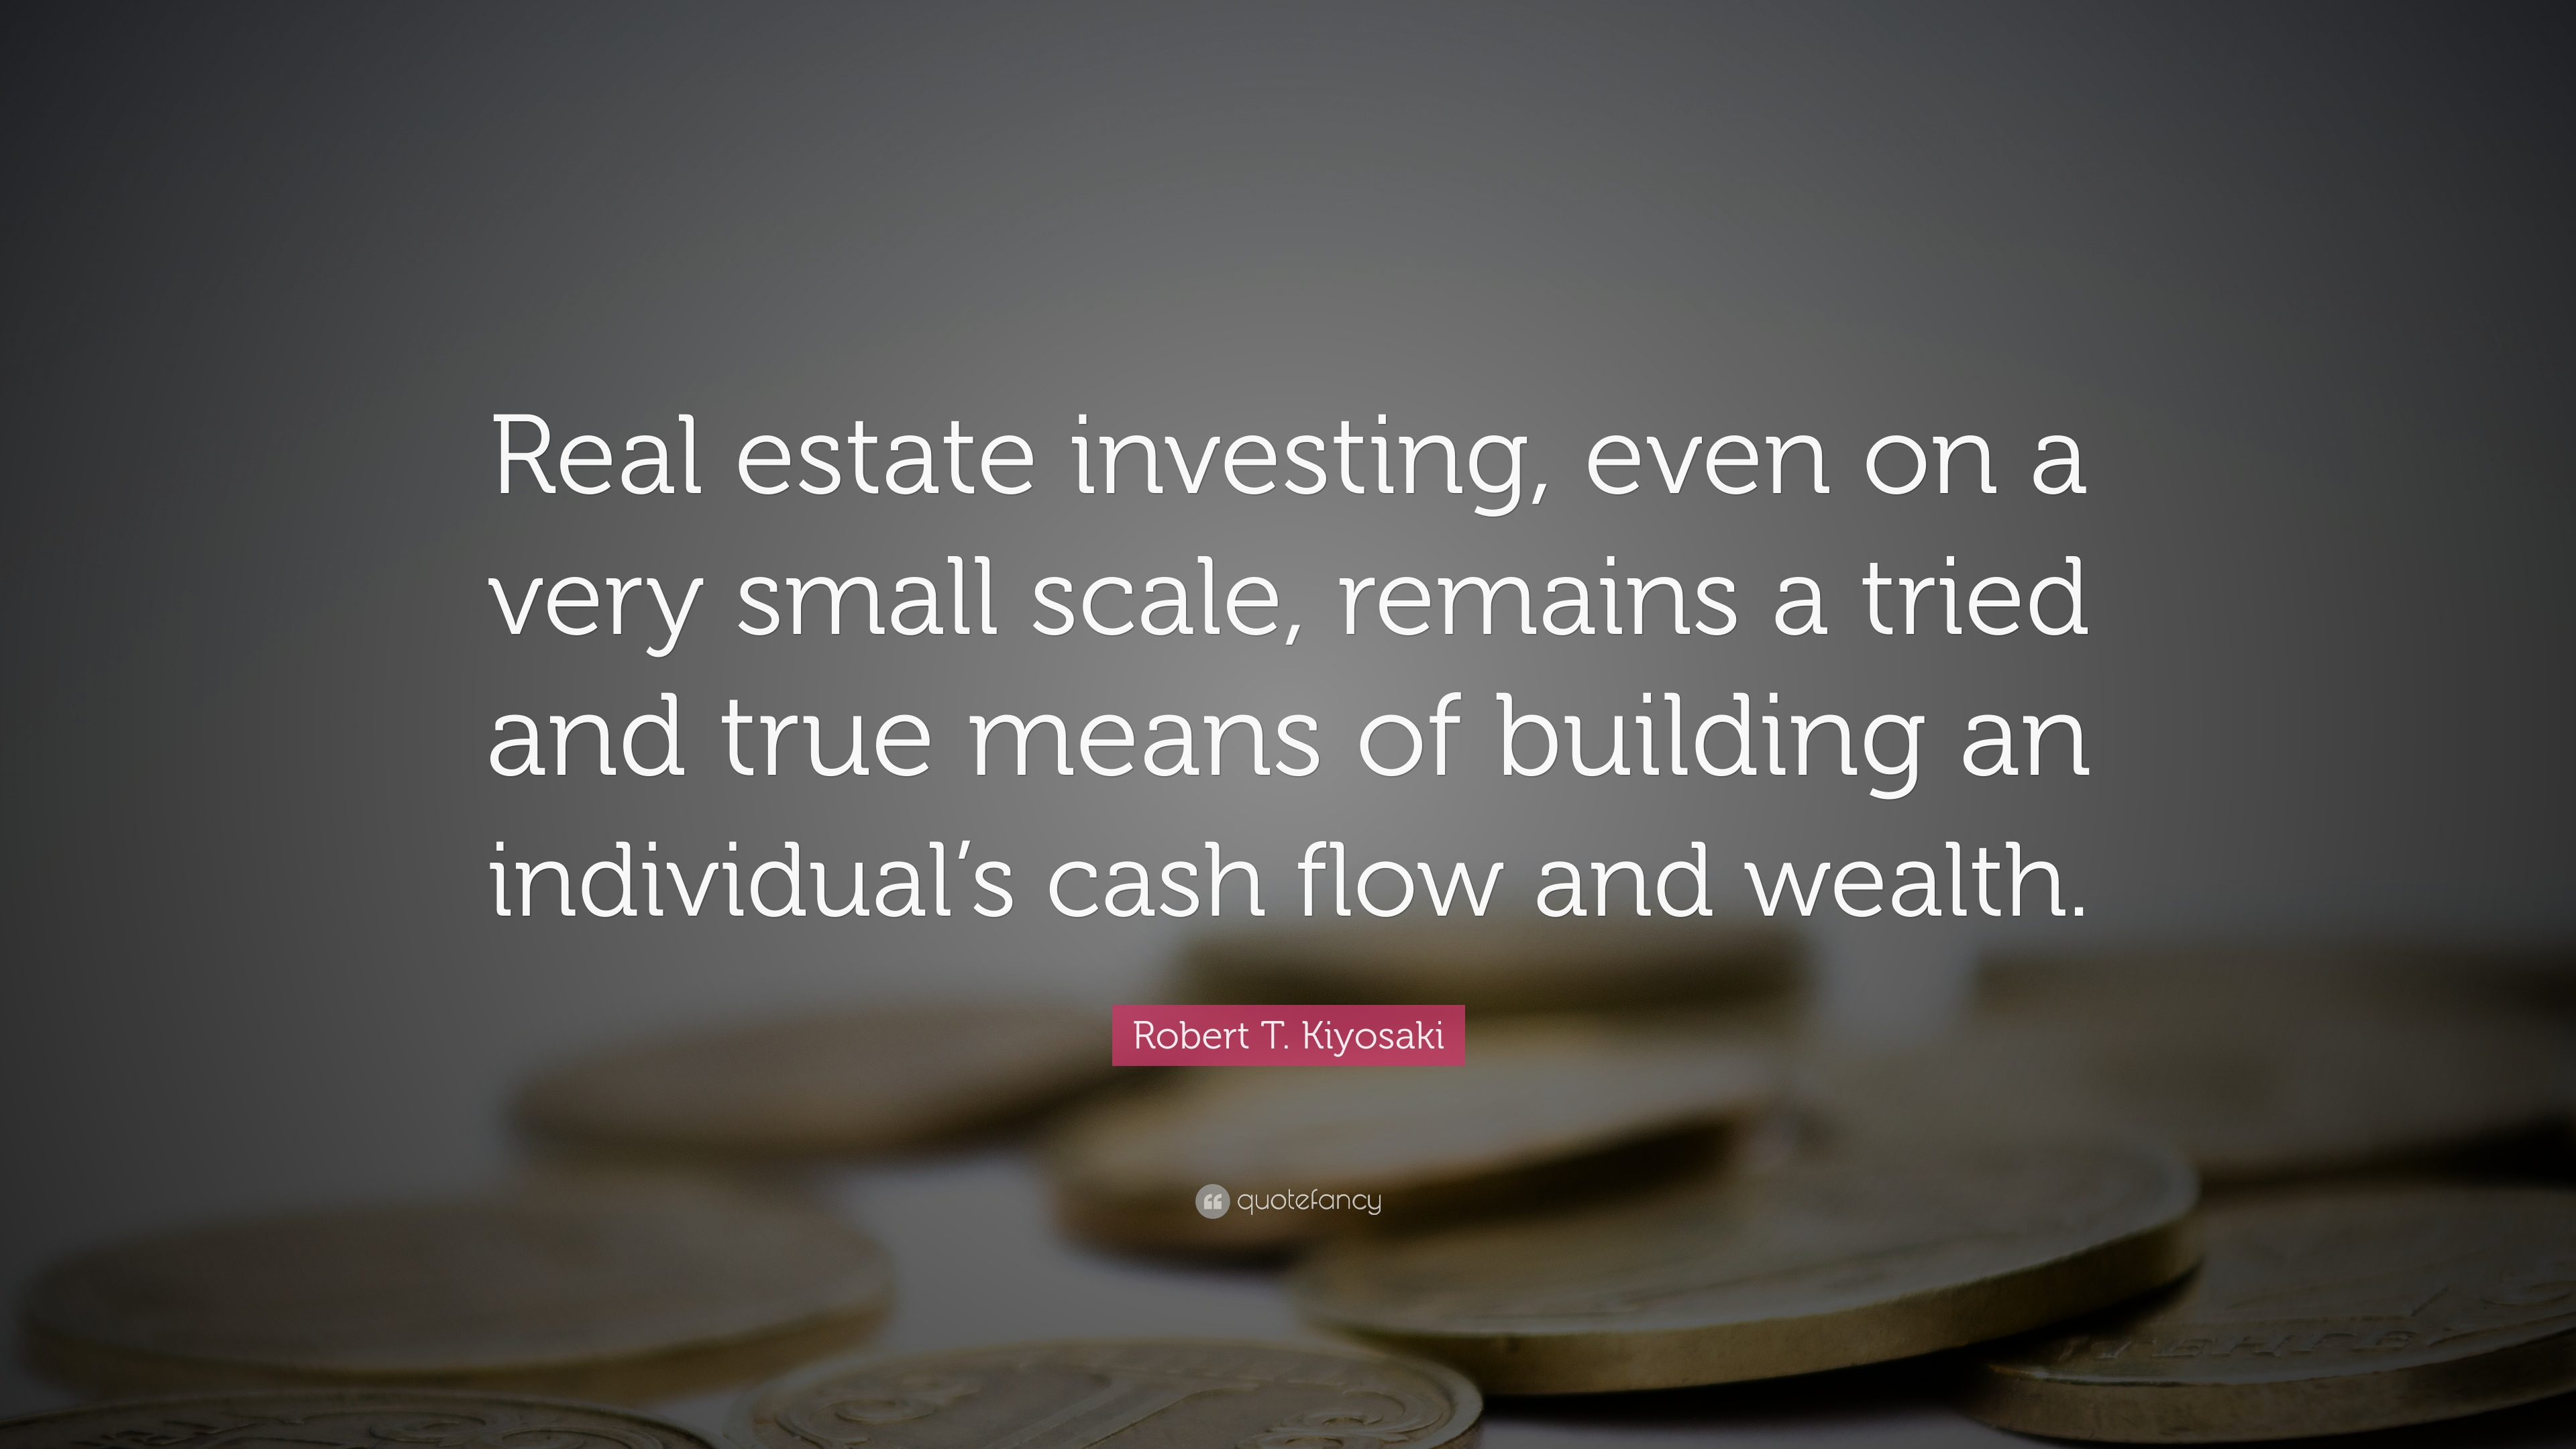 re-investing